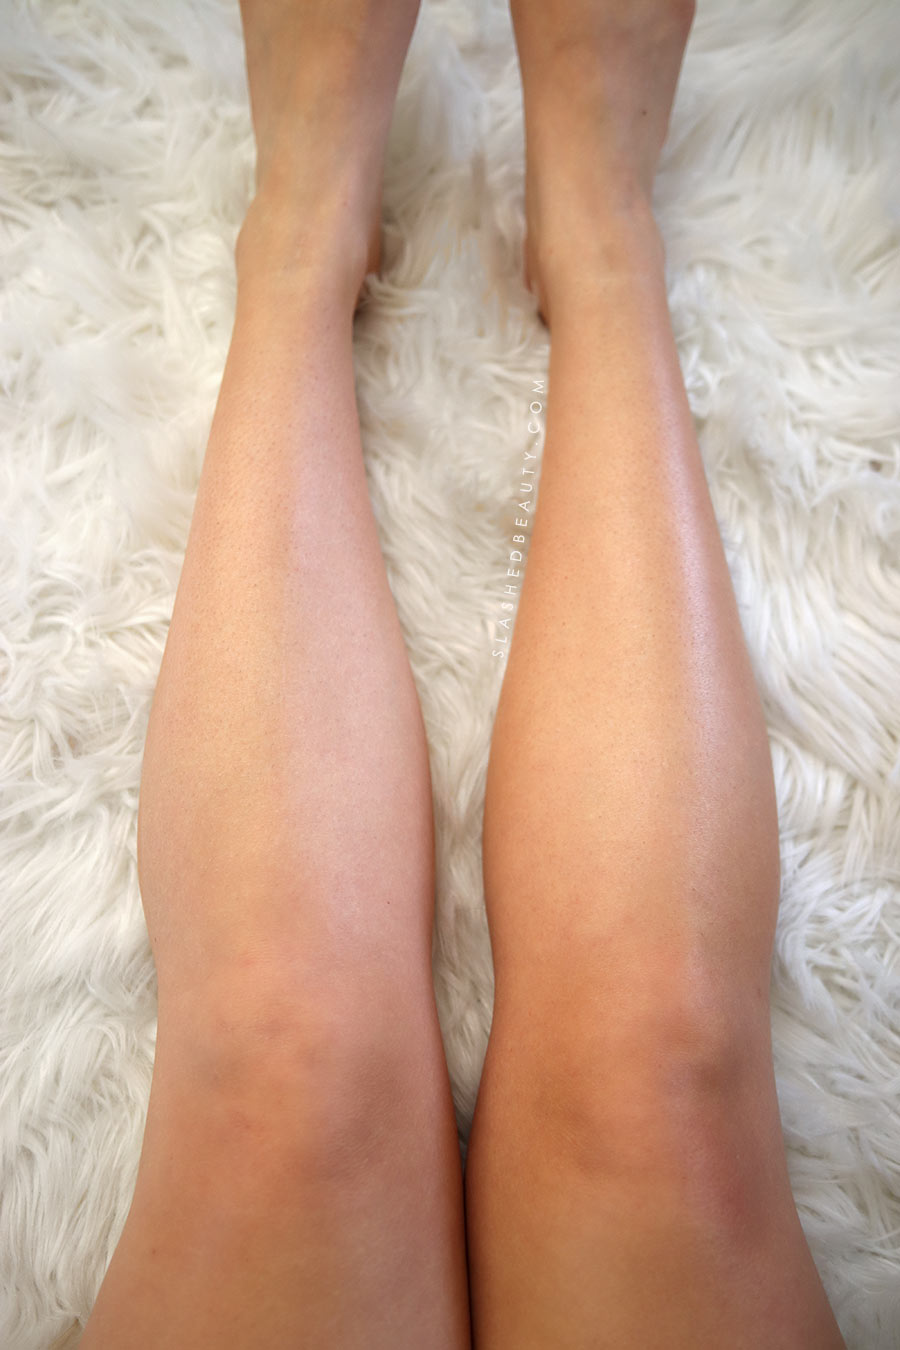 Neutrogena Build-A-Tan Before & After Results on Legs | Best Drugstore Self Tanner | Slashed Beauty